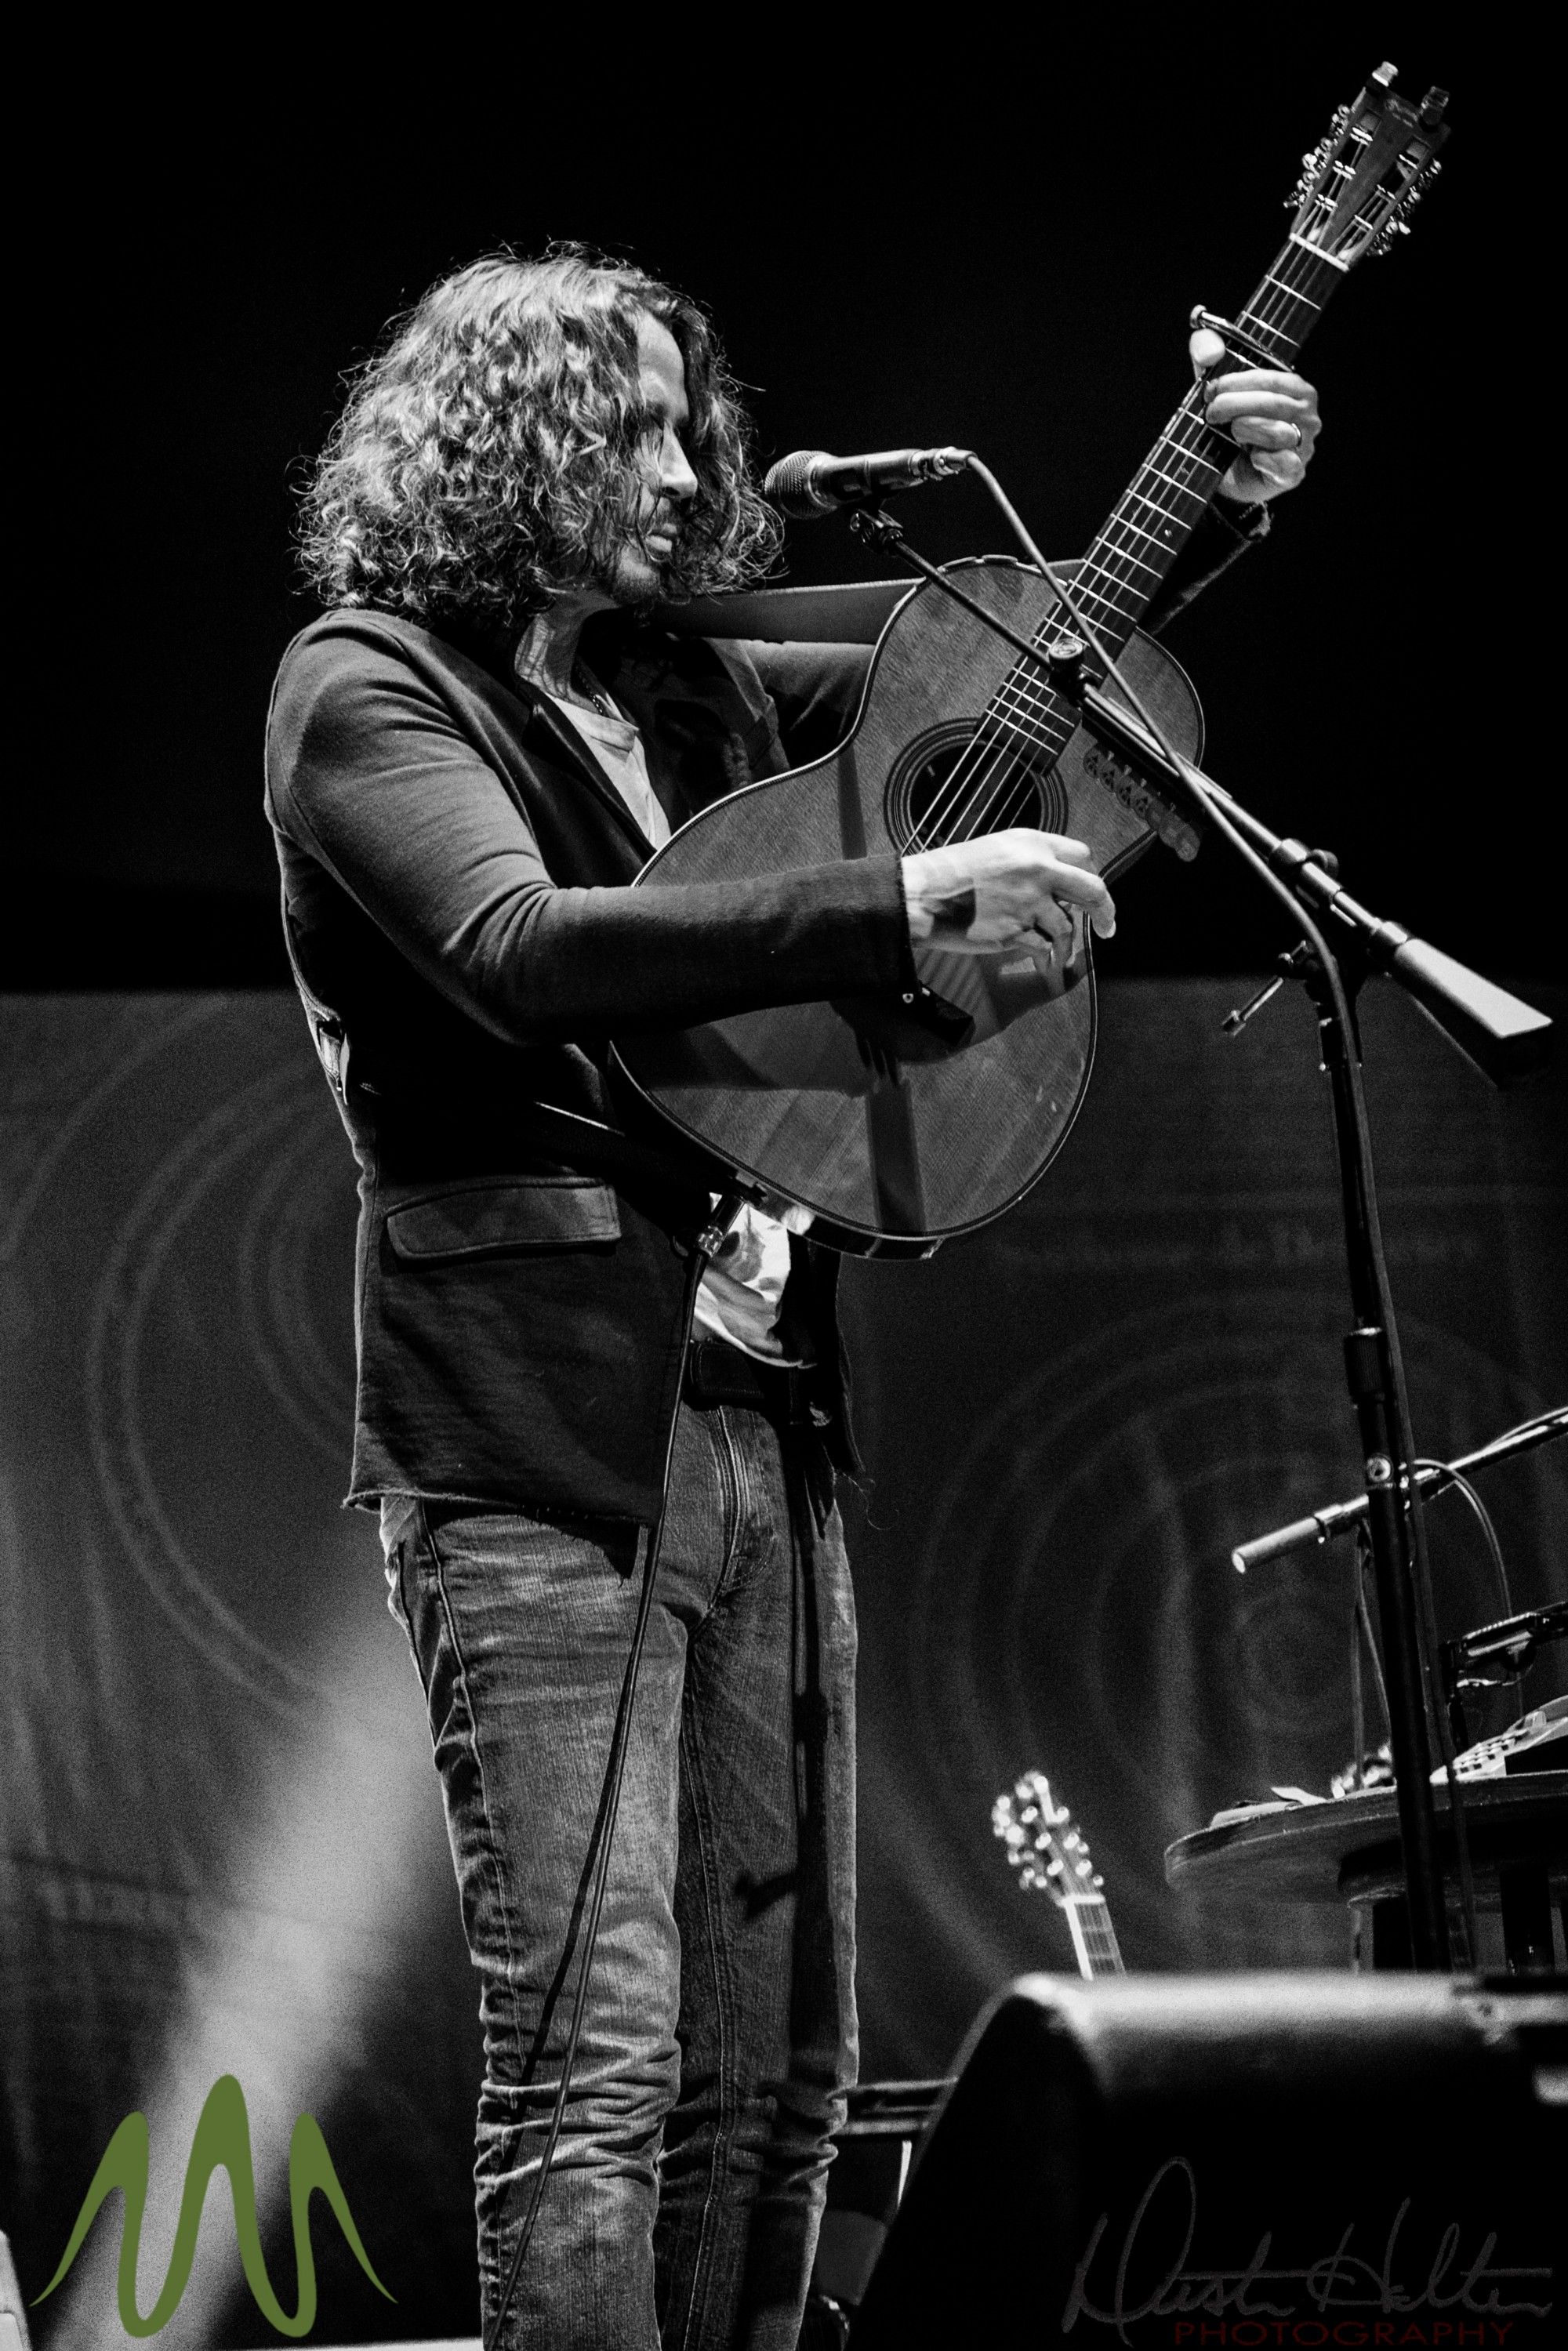 Chris Cornell S Incredible 2016 In 10 Stunning Photos With Images